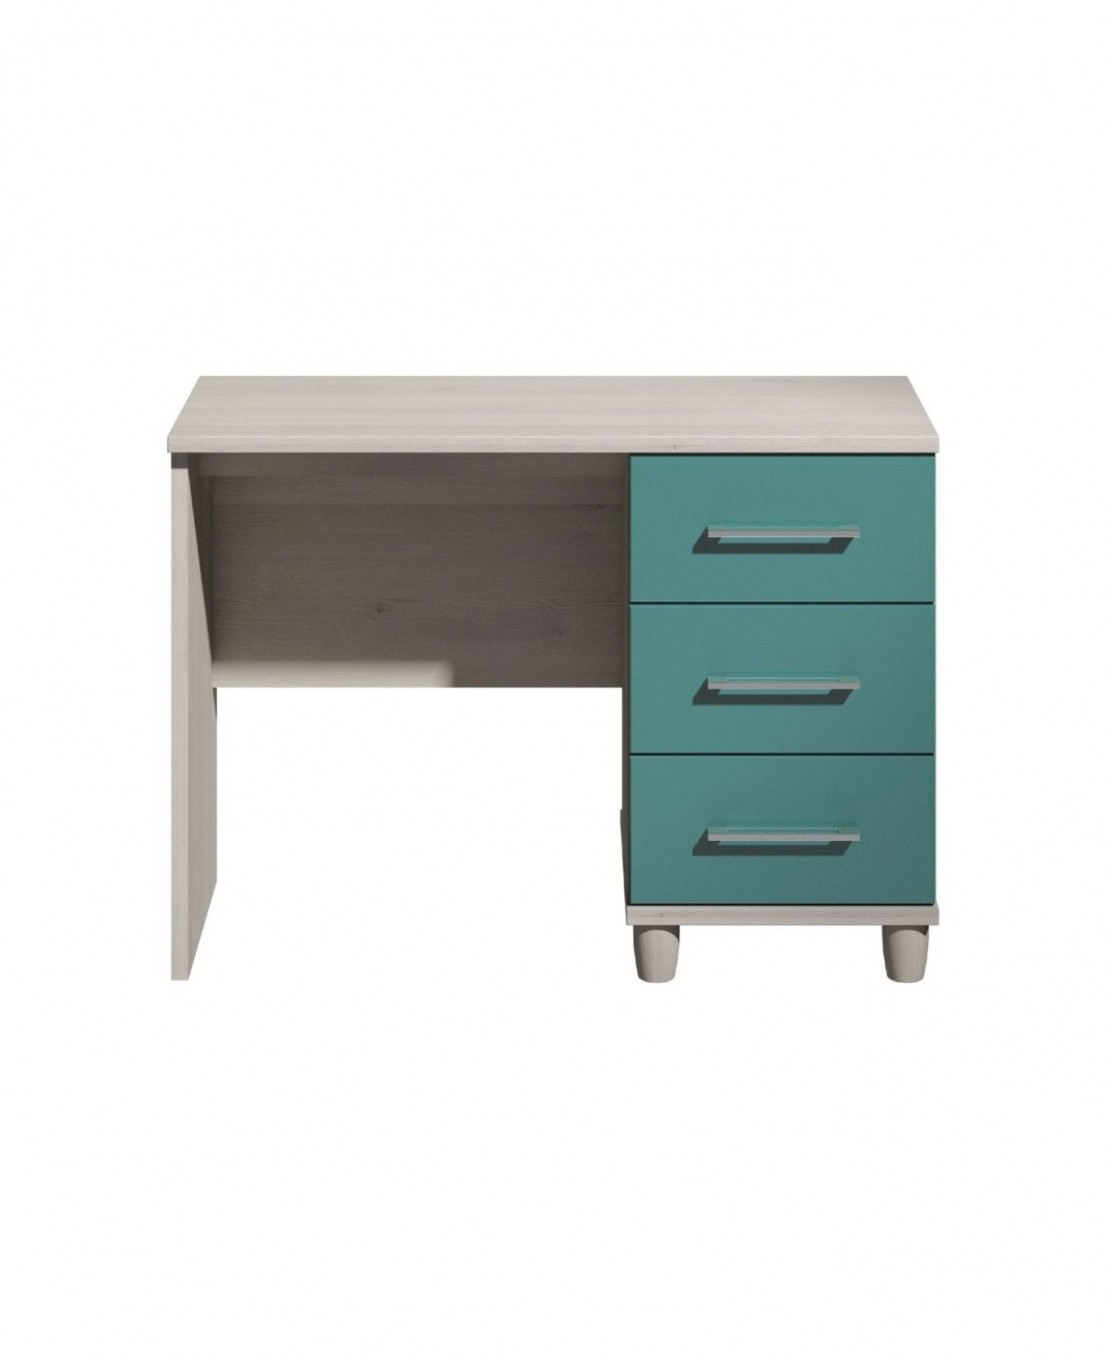 /_images/product-photos/kt-furniture-vardy-single-pod-dressing-table-lagoon-a.jpg